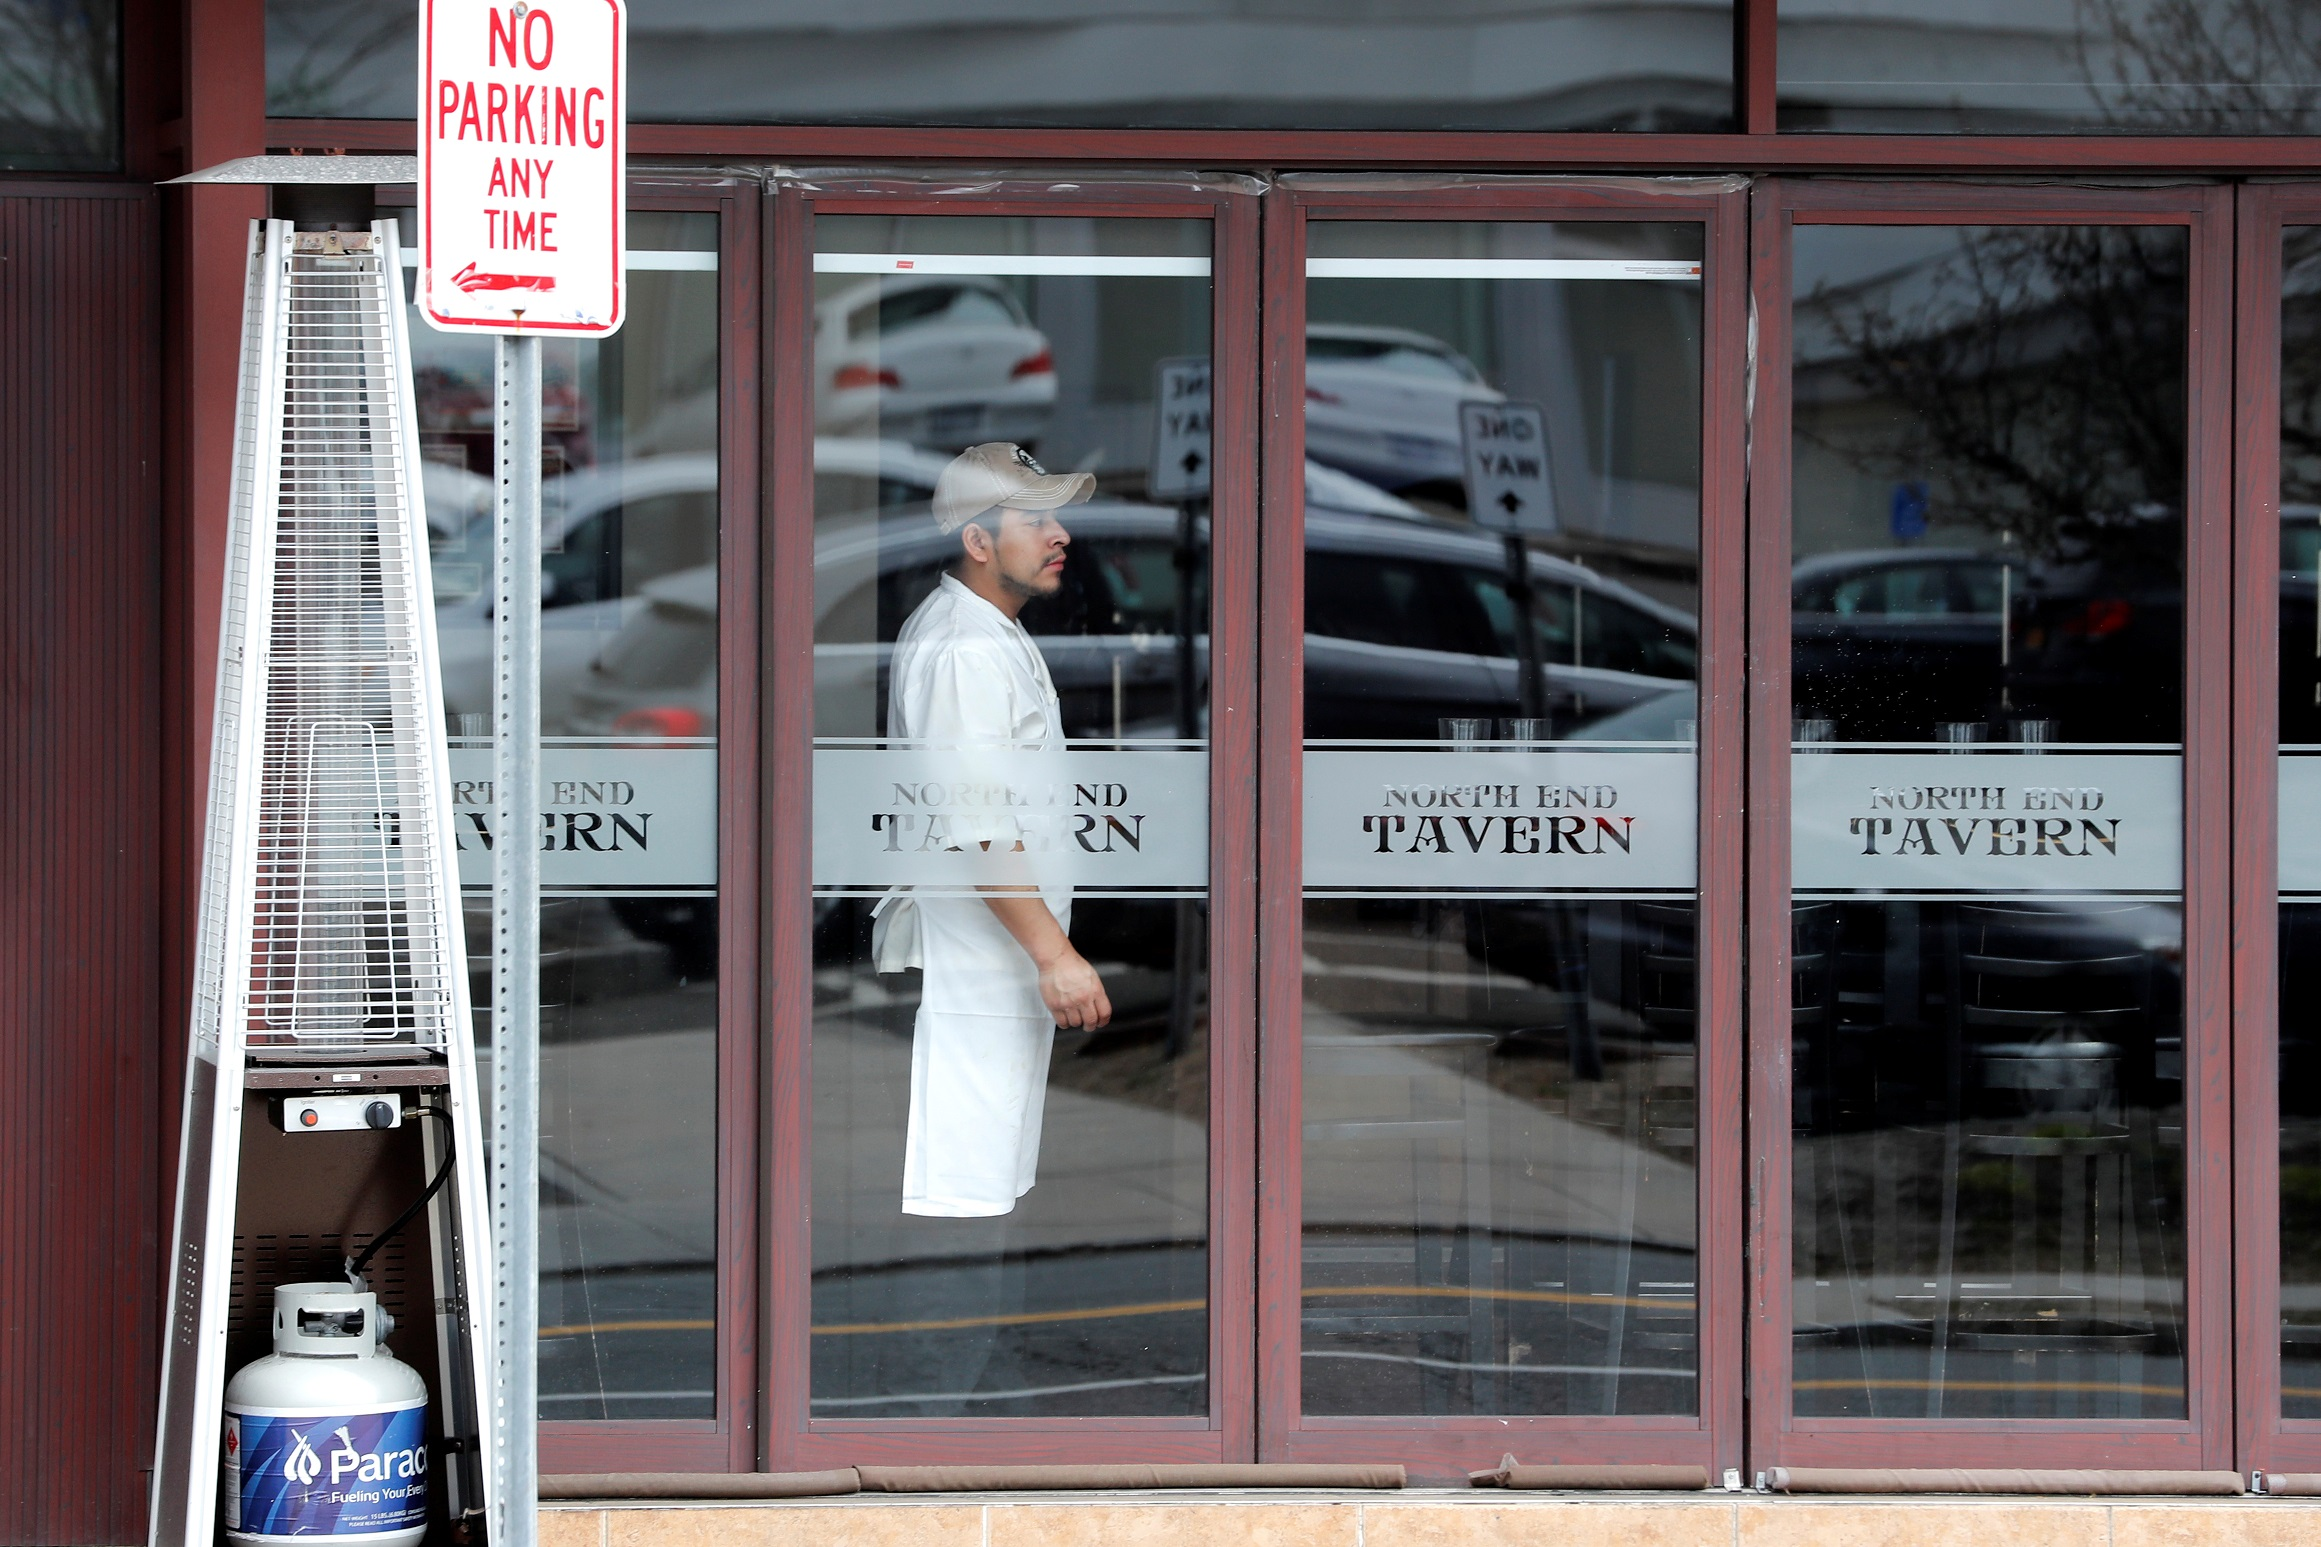 A worker looks out from a near empty restaurant on North Avenue during the coronavirus outbreak in New Rochelle, New York, U.S., March 11, 2020. REUTERS/Mike Segar